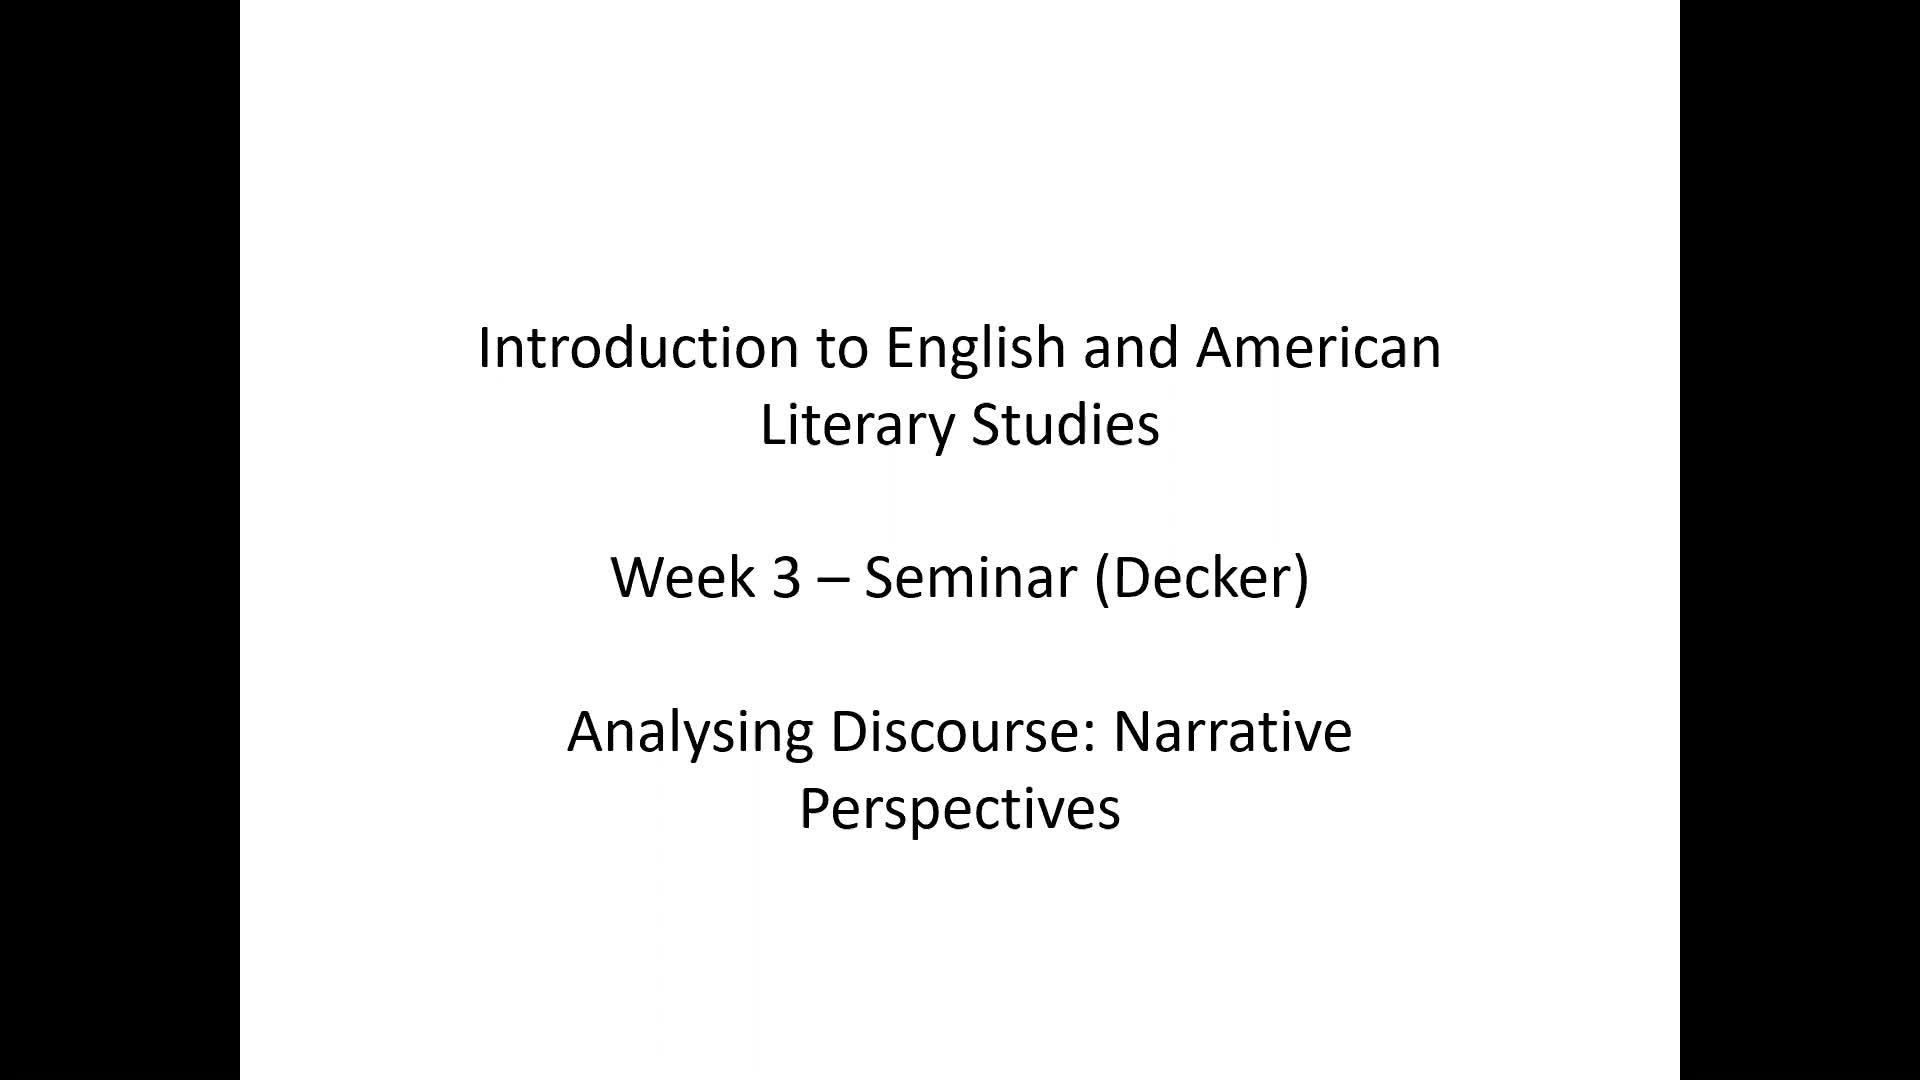 Introduction to English and American Literary Studies - Seminar Decker - Week 3